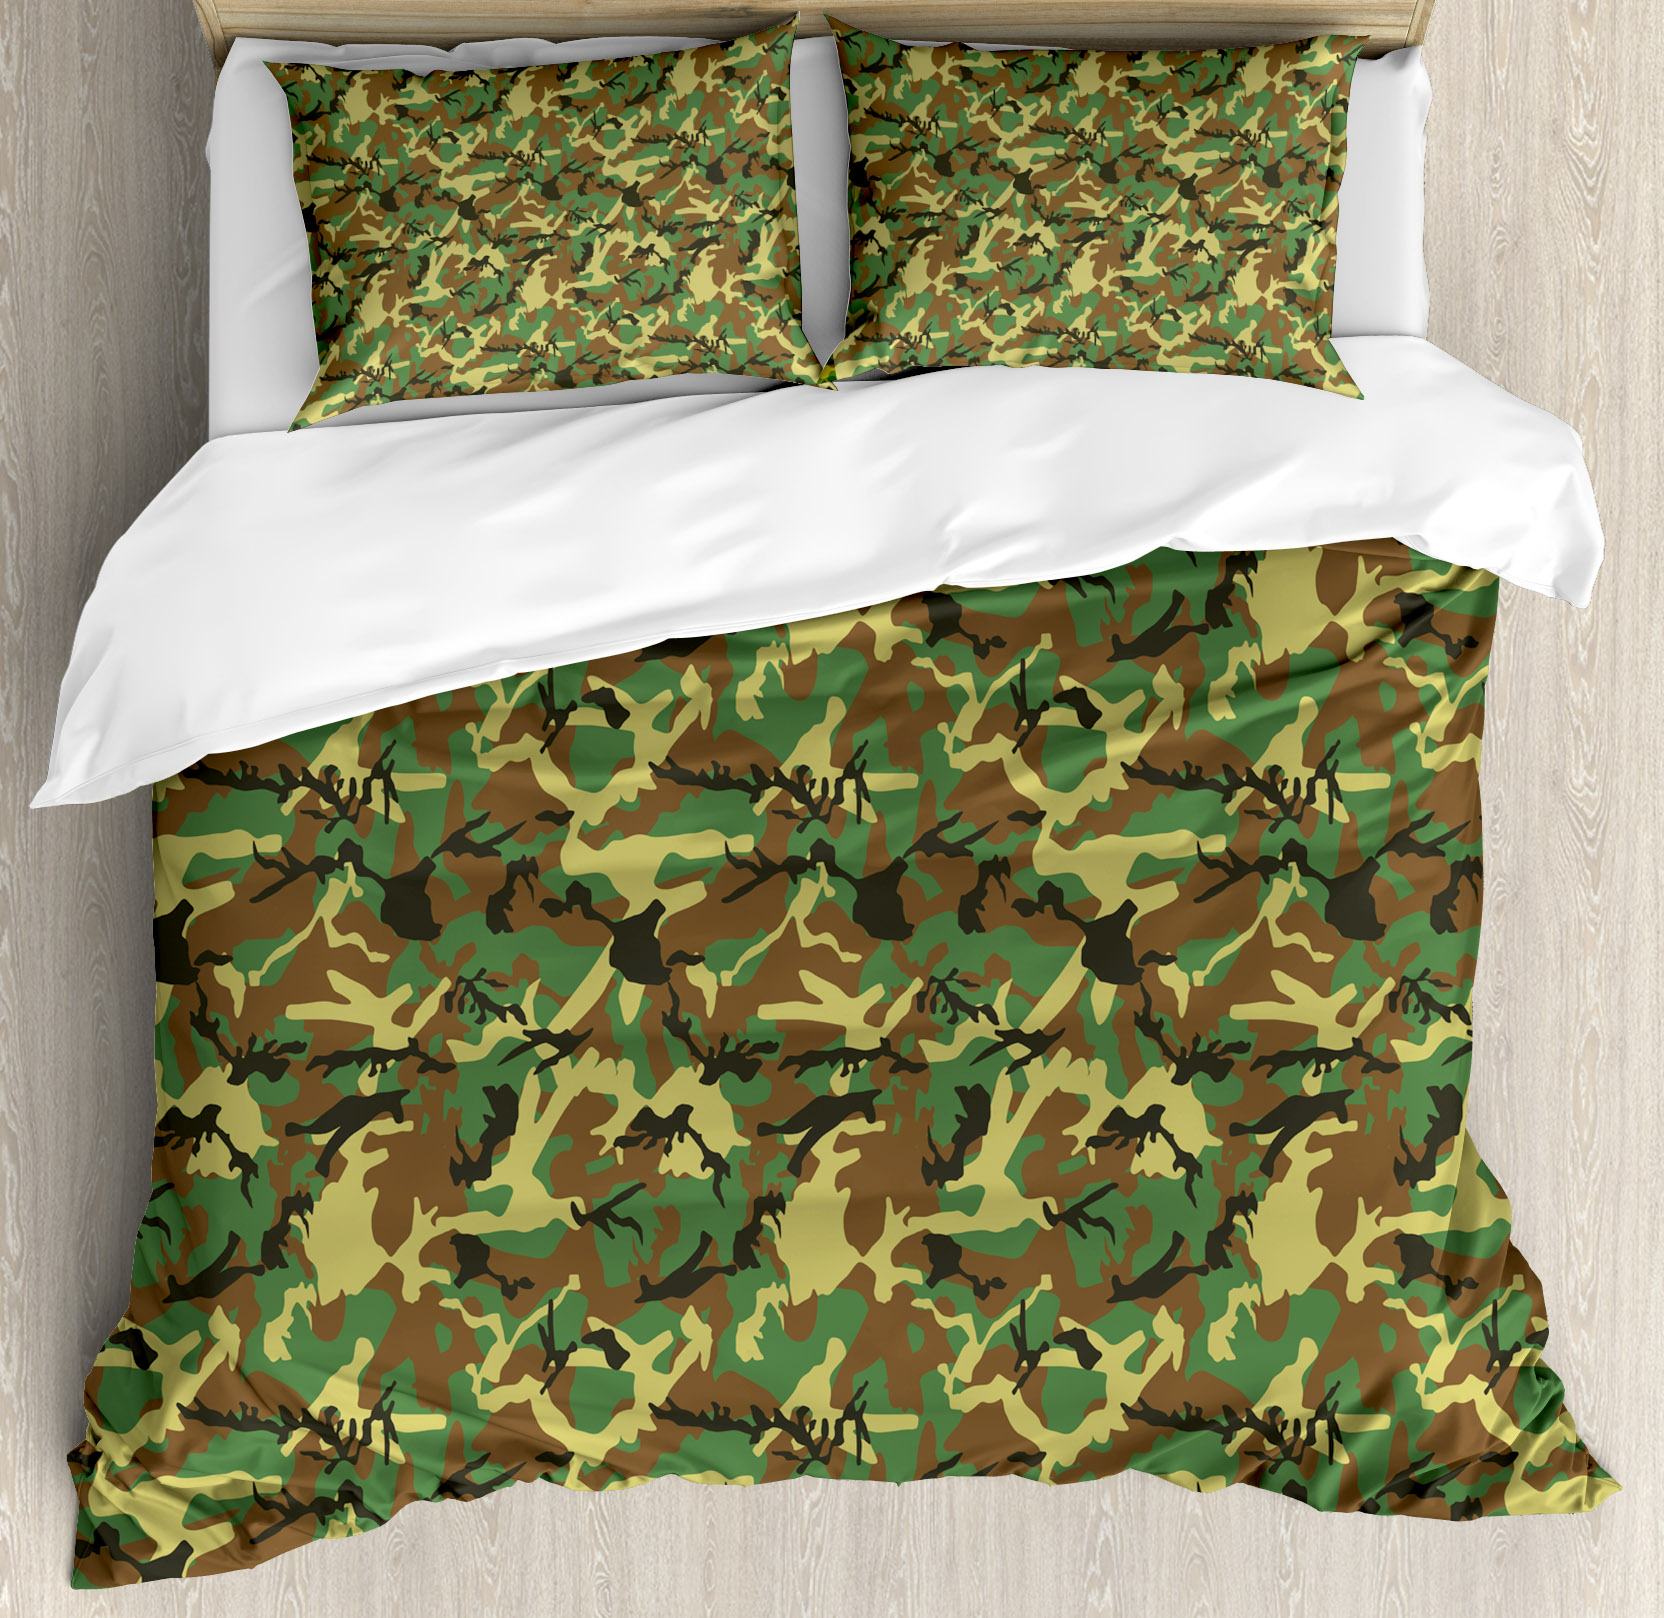 Camo King Size Duvet Cover Set, Woodland Camouflage Patte...